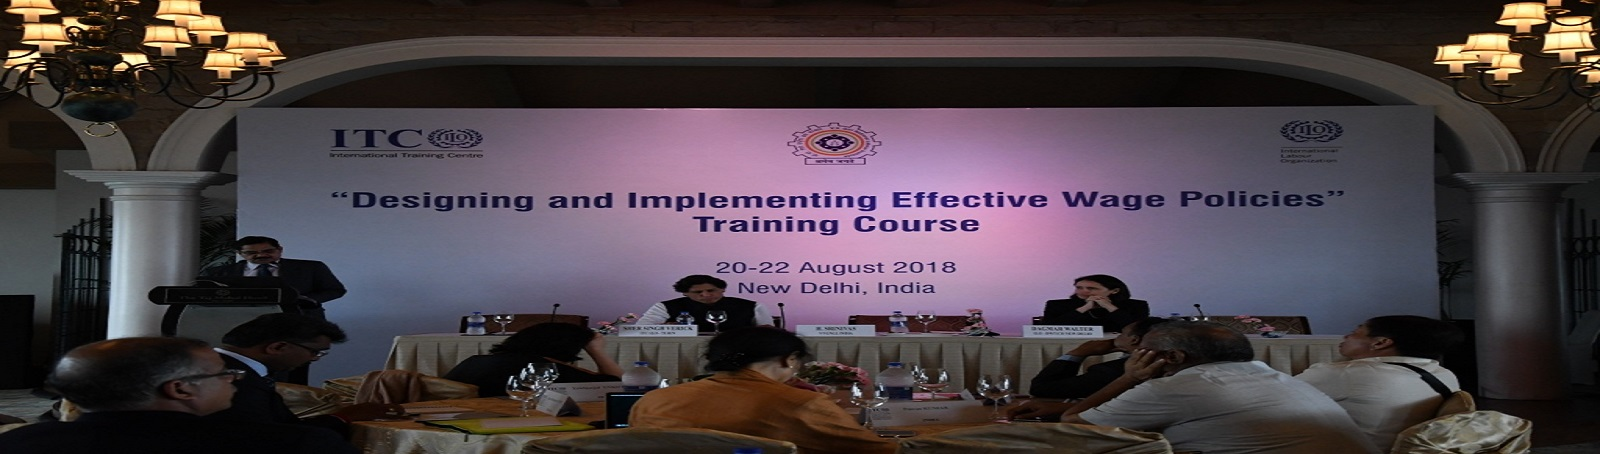 "Dr. H. SRINIVAS, Director General, VVGNLI inaugurated the International Training Programme on ""Designing and Implementing Effective Wage Policies"", organized in collaboration with International Training Centre of ILO during 20-22 August, 2018 at Hotel Taj"